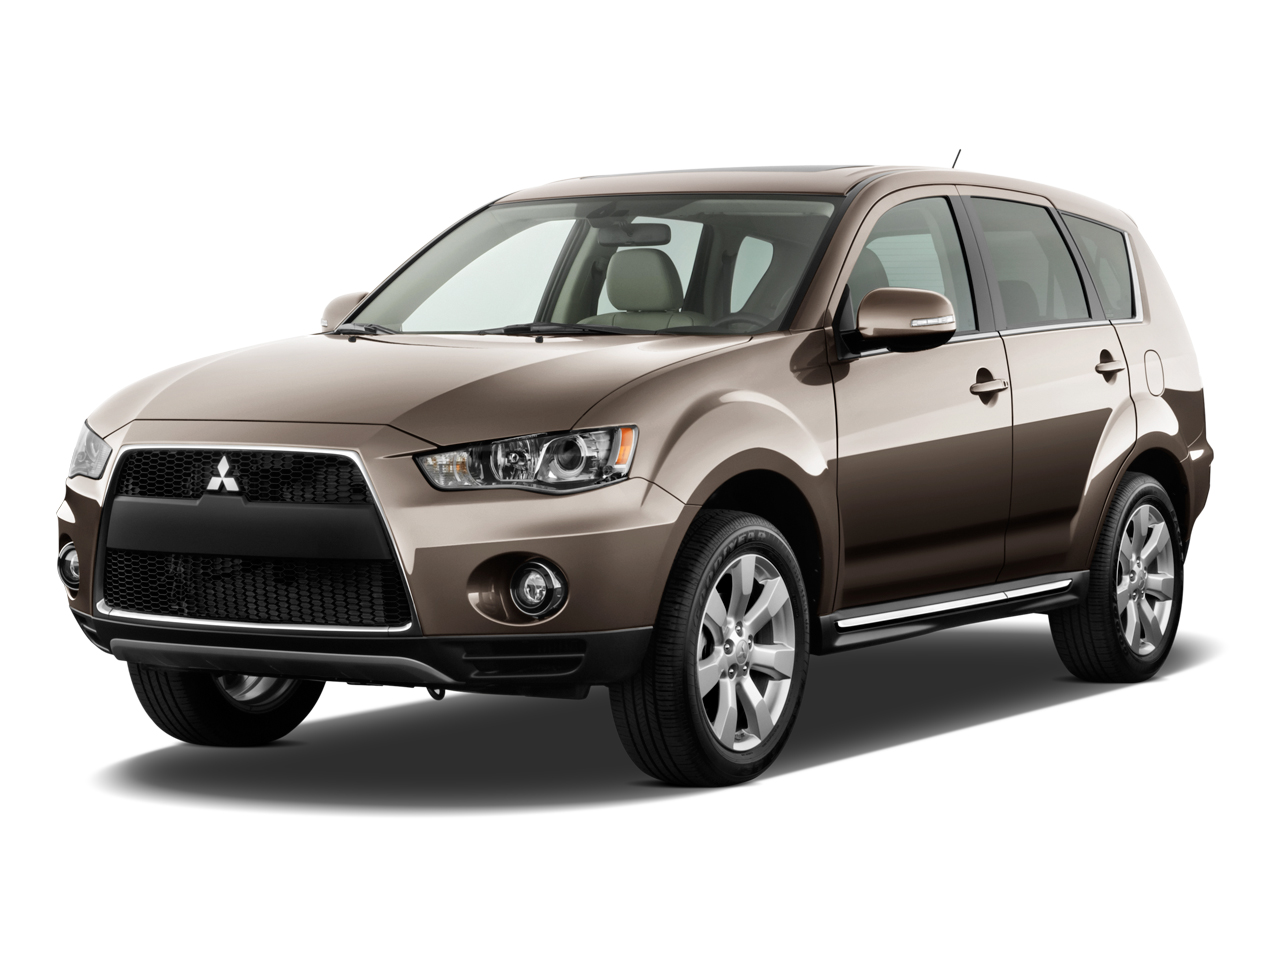 2010 Mitsubishi Outlander Review Ratings Specs Prices And